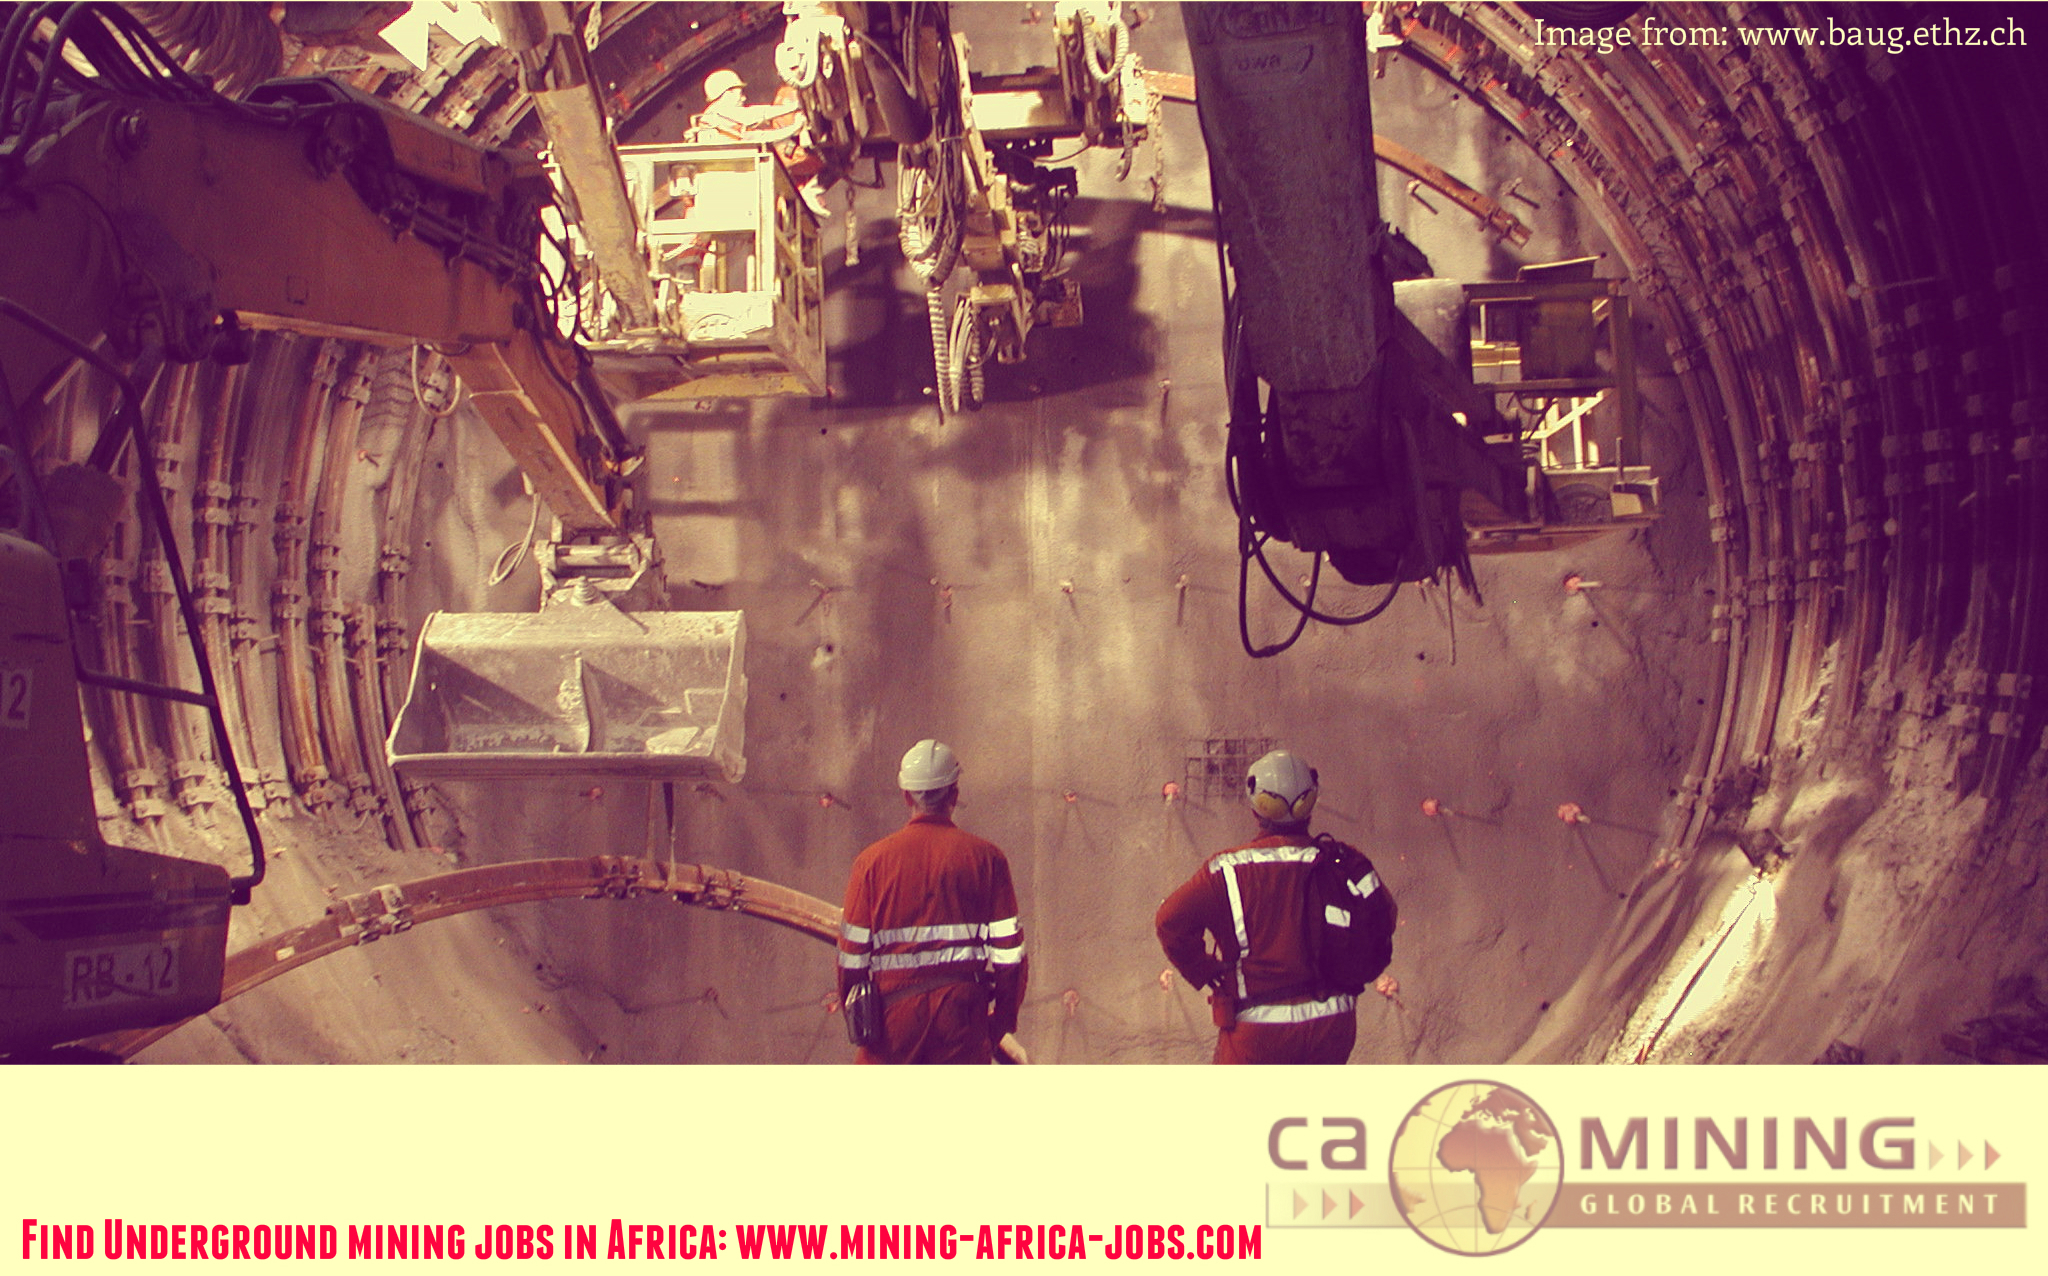 Underground Mining Jobs in Africa, CA Mining Recruitment Projects in DRC, Ghana, South Africa